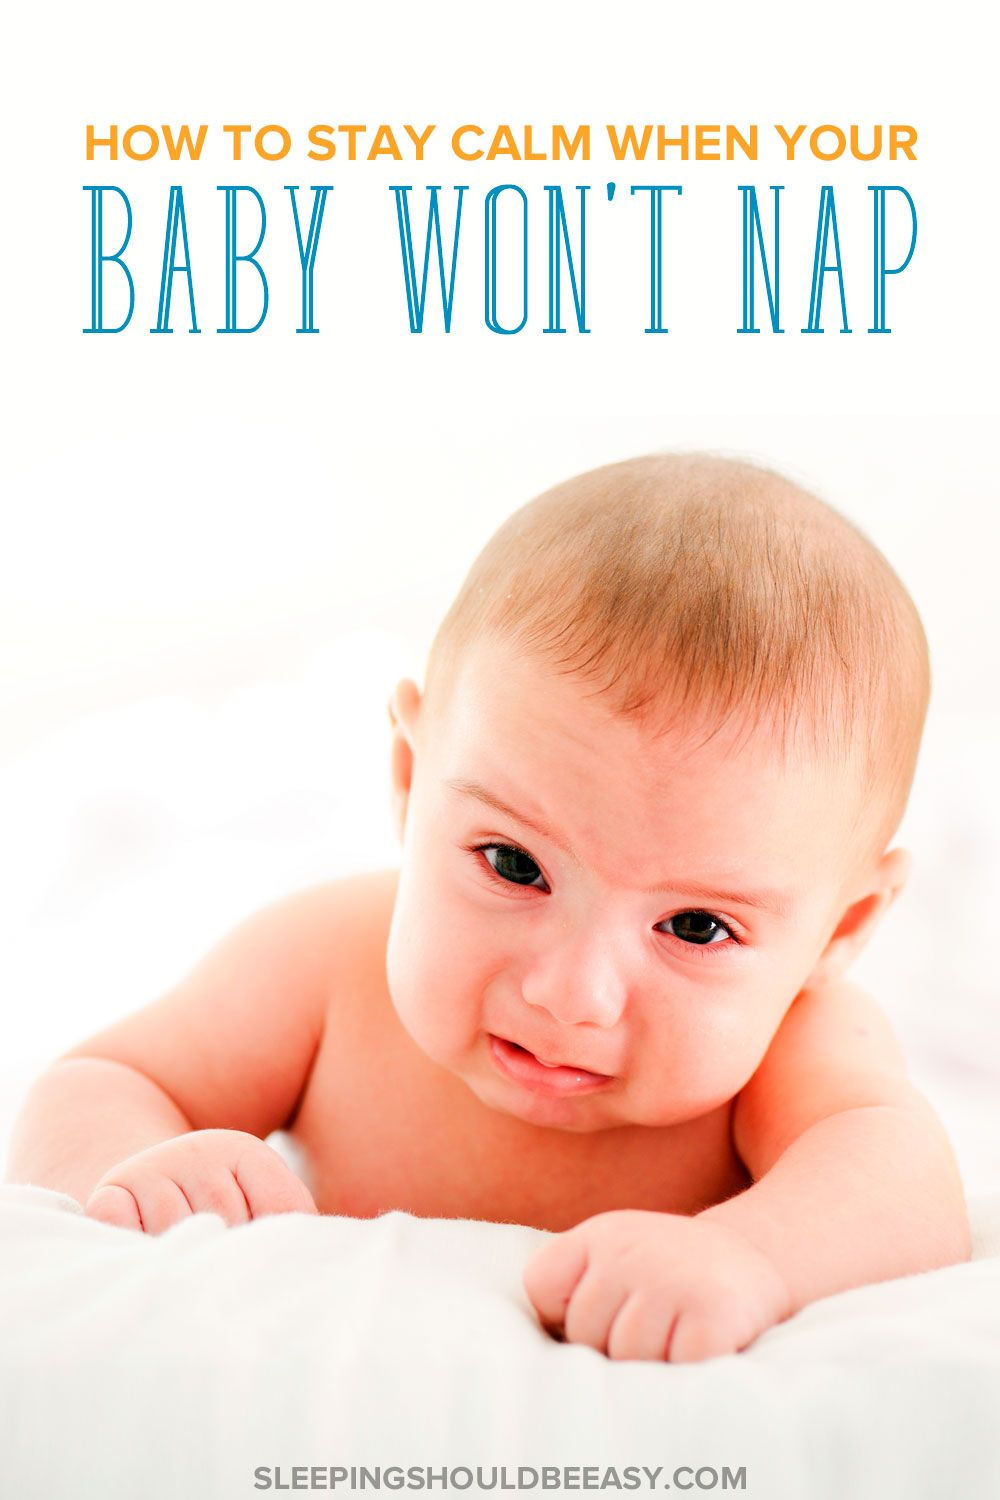 Are You Able To Stay Calm When Your Baby Won T Nap Baby Wont Nap Baby Sleep Baby